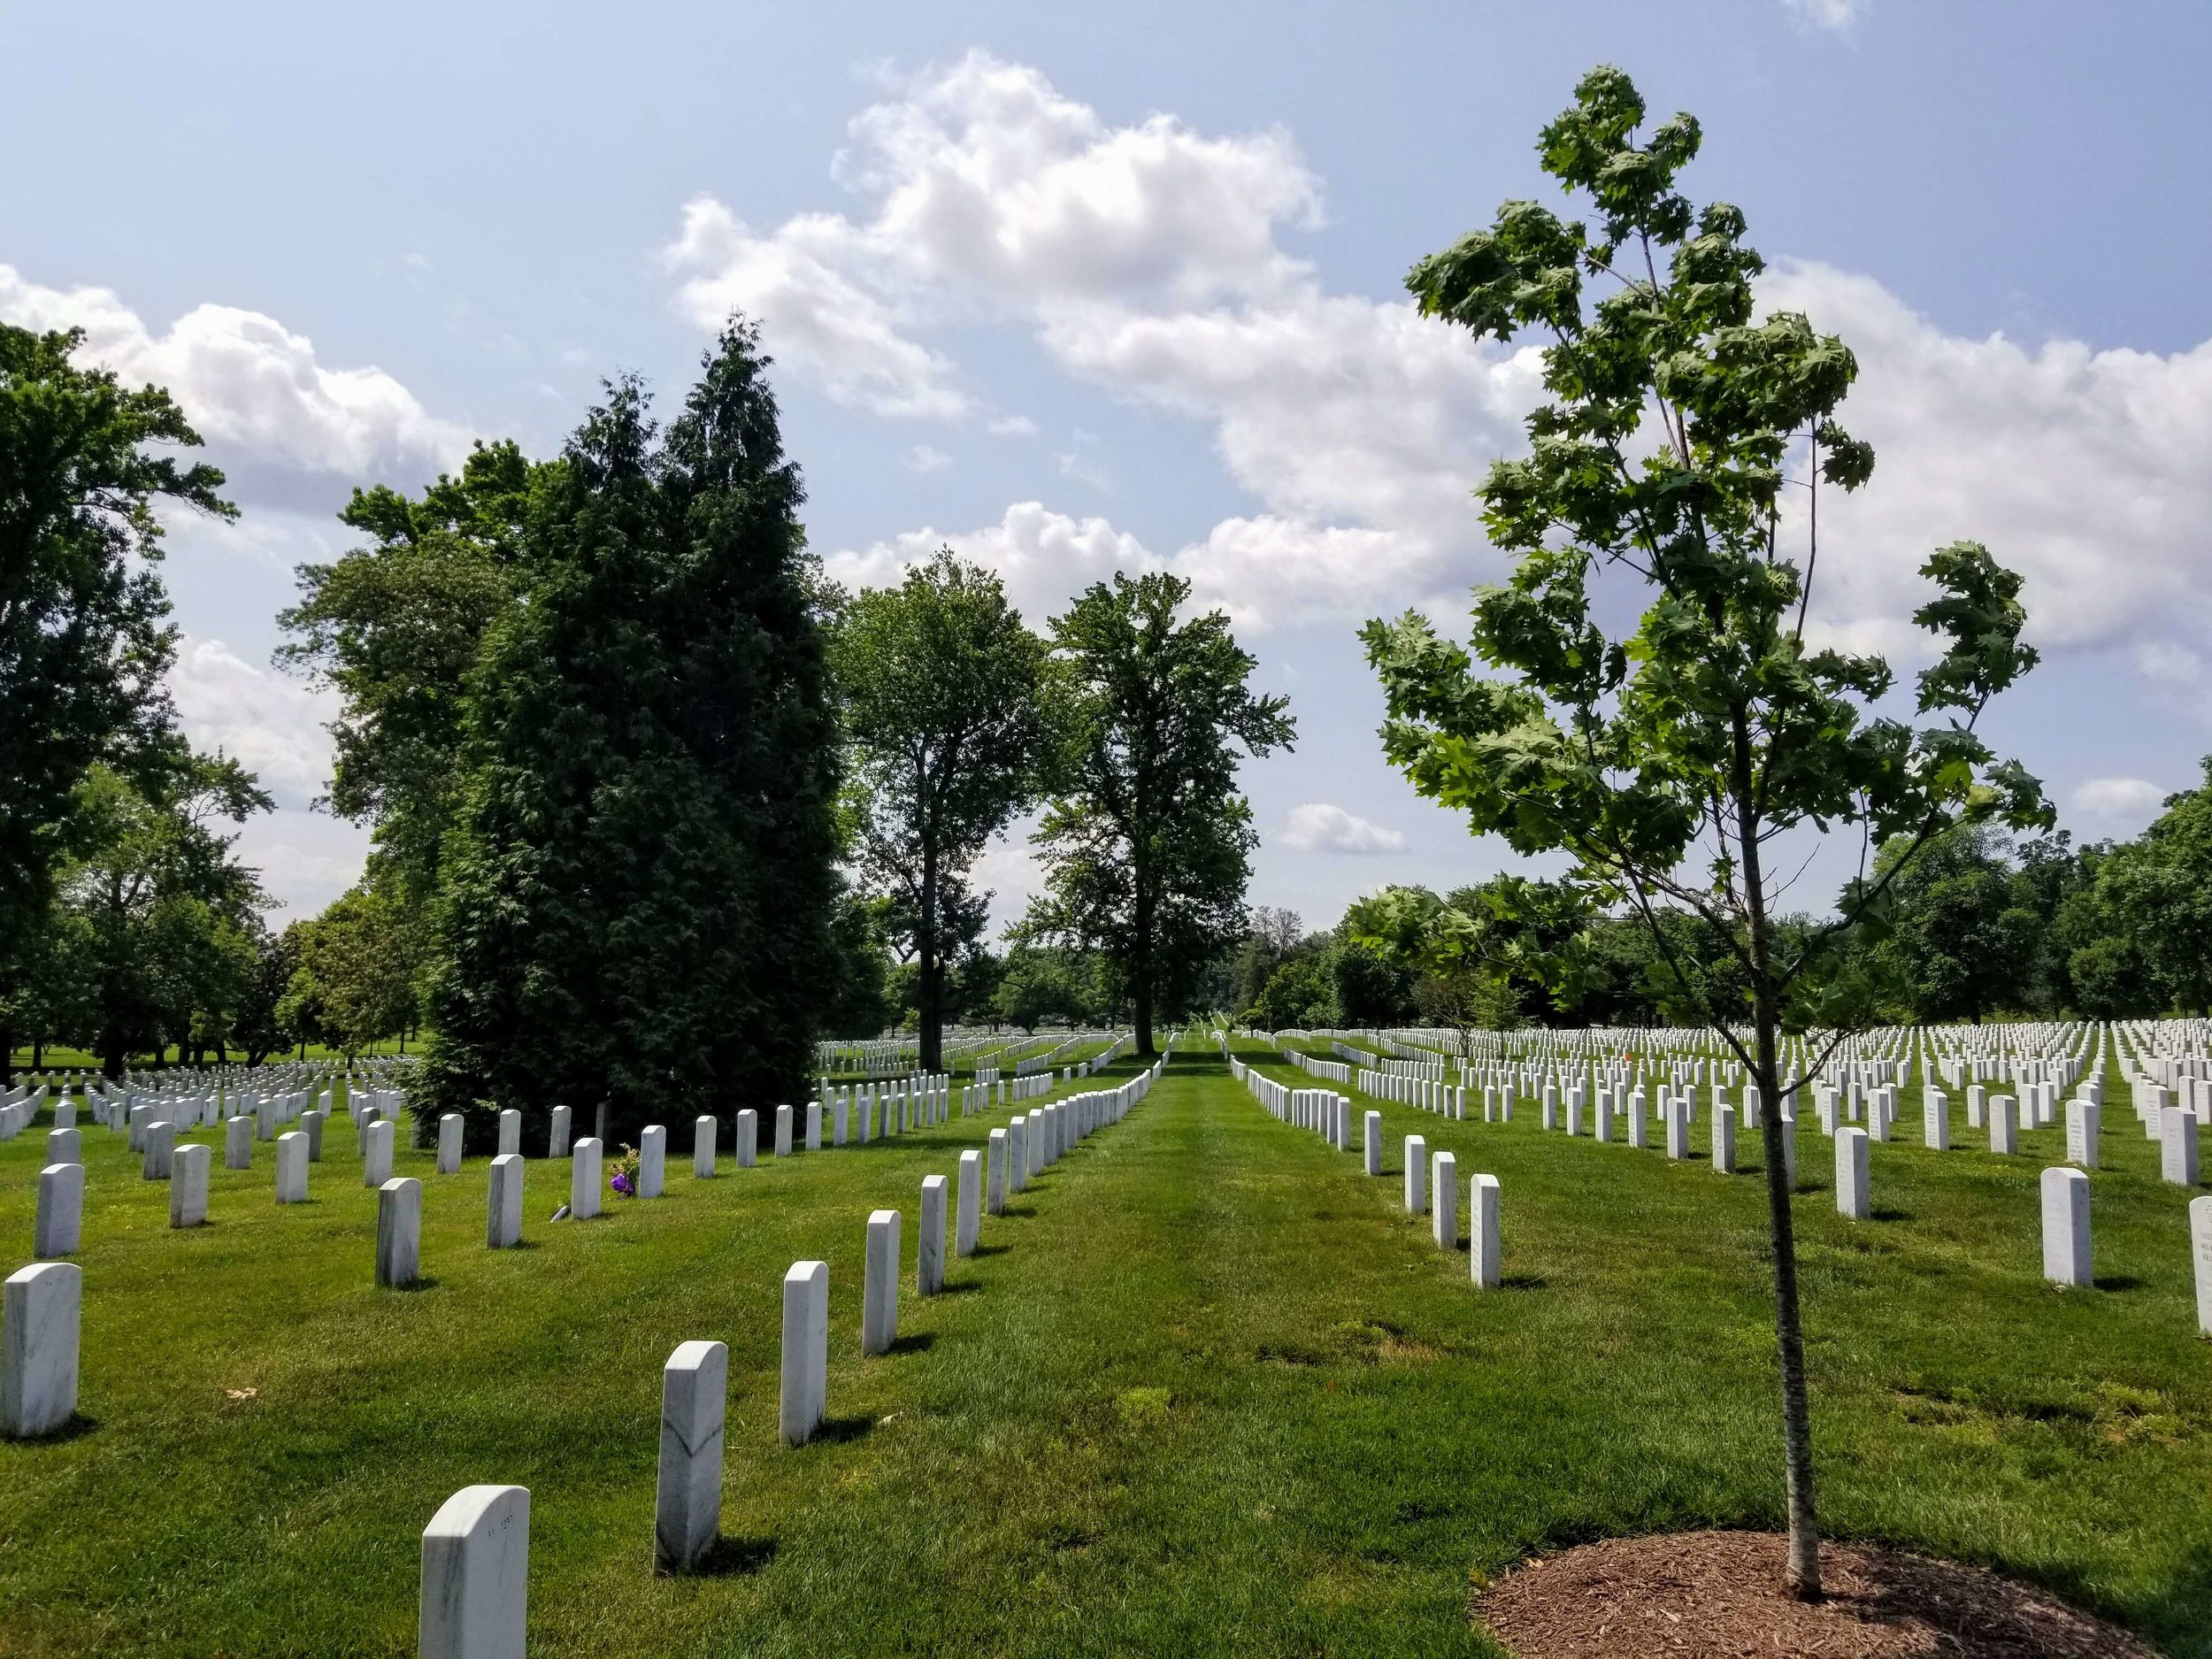 One of the many different sections of graves found in Arlington National Cemetery